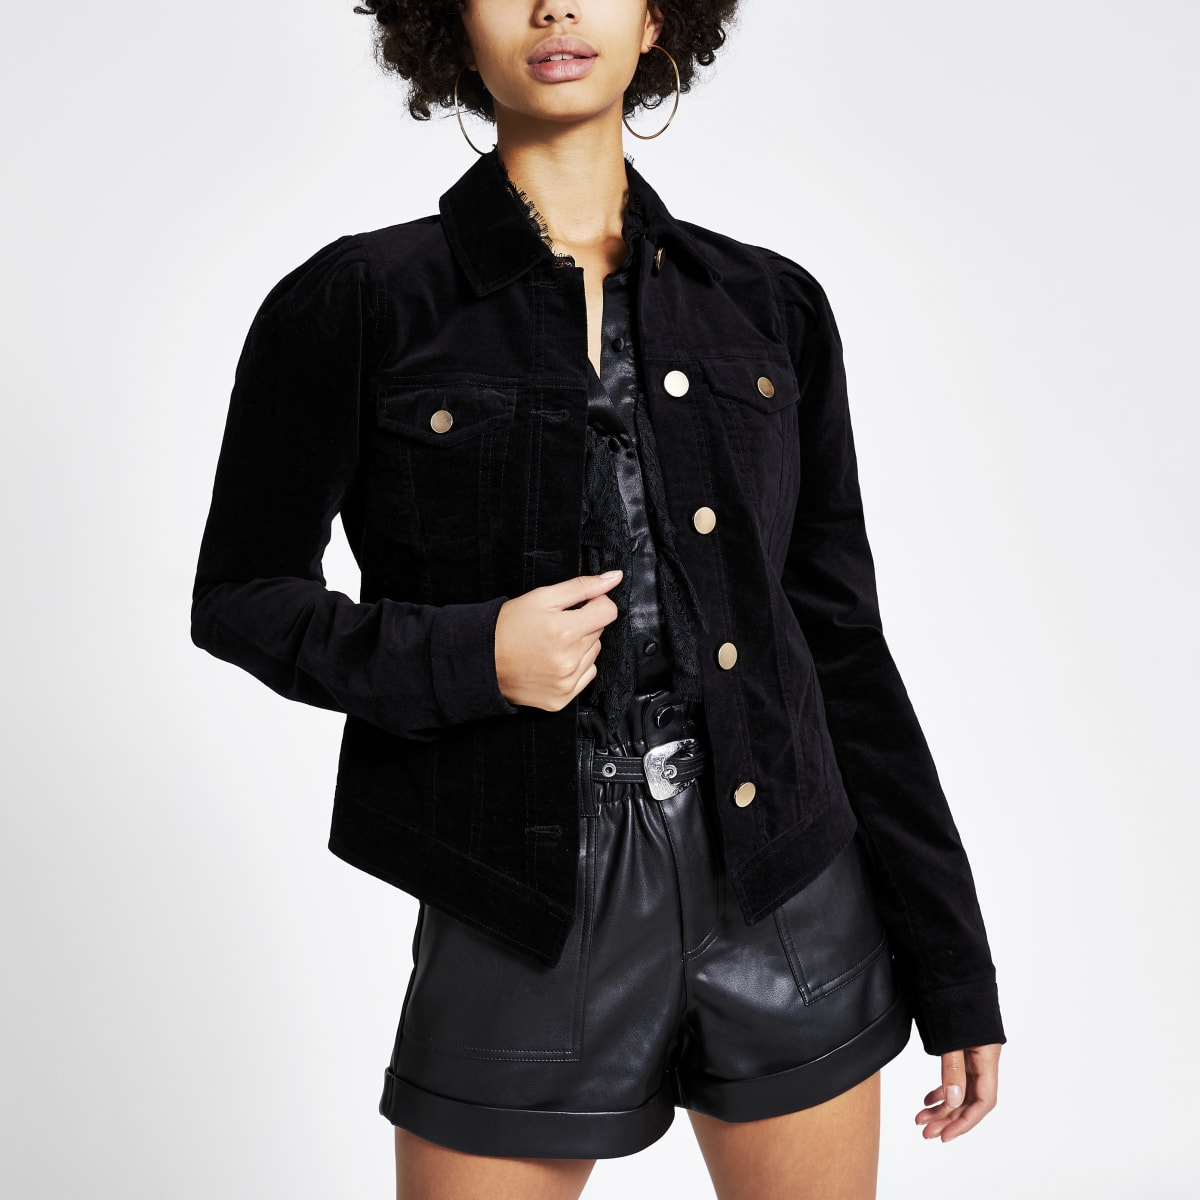 Black velvet puff sleeve jacket